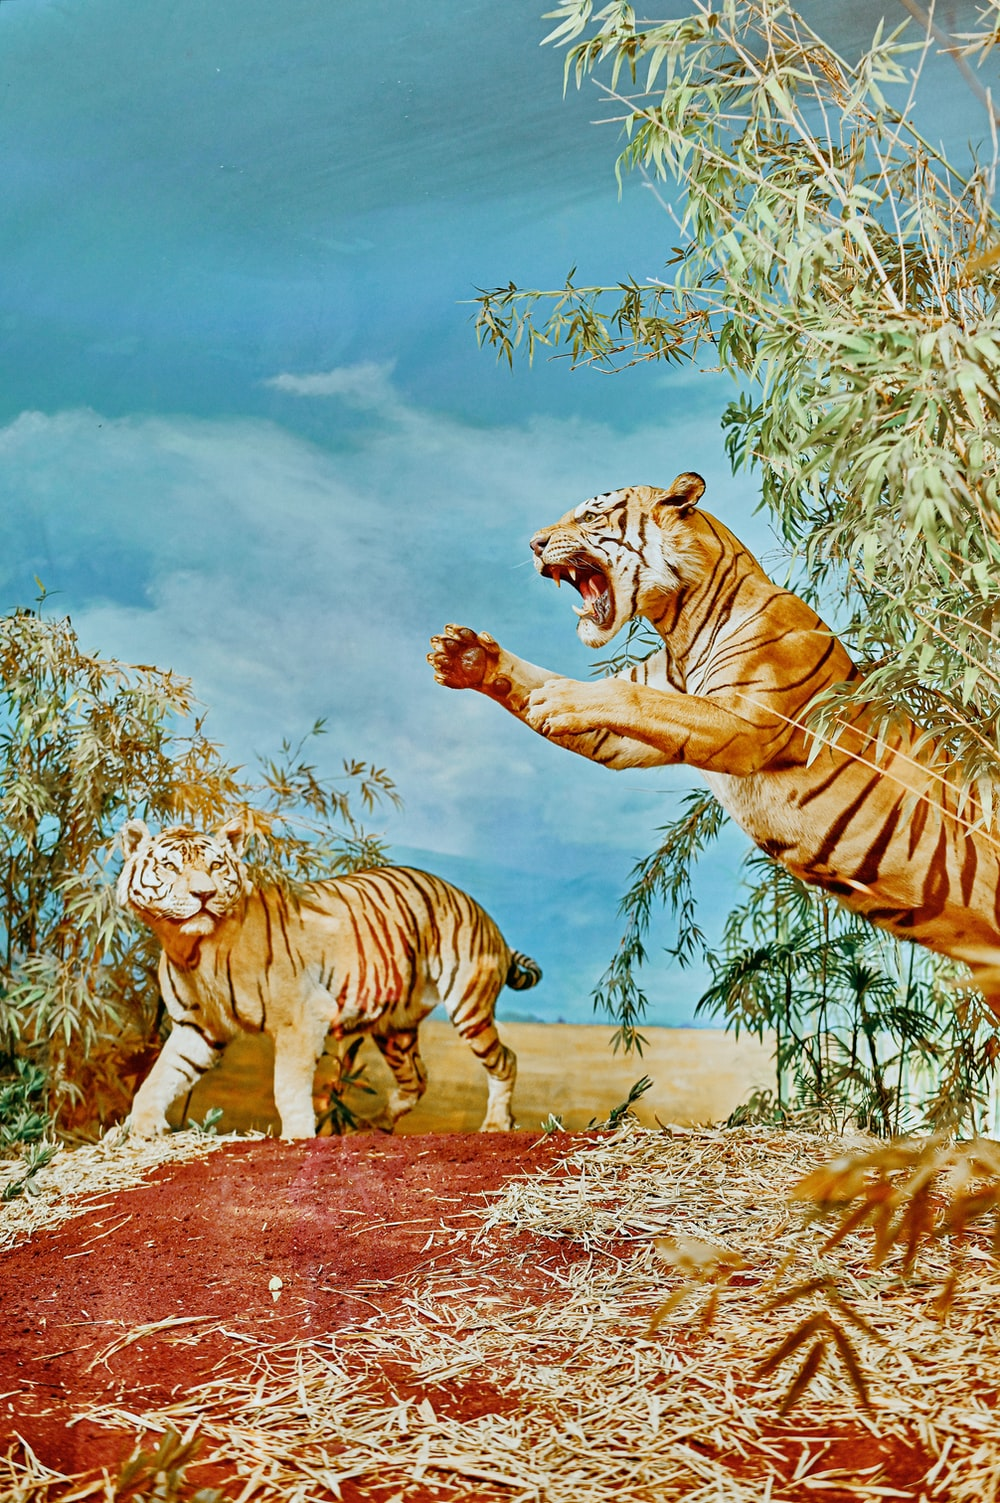 tiger and tiger on snow covered ground painting